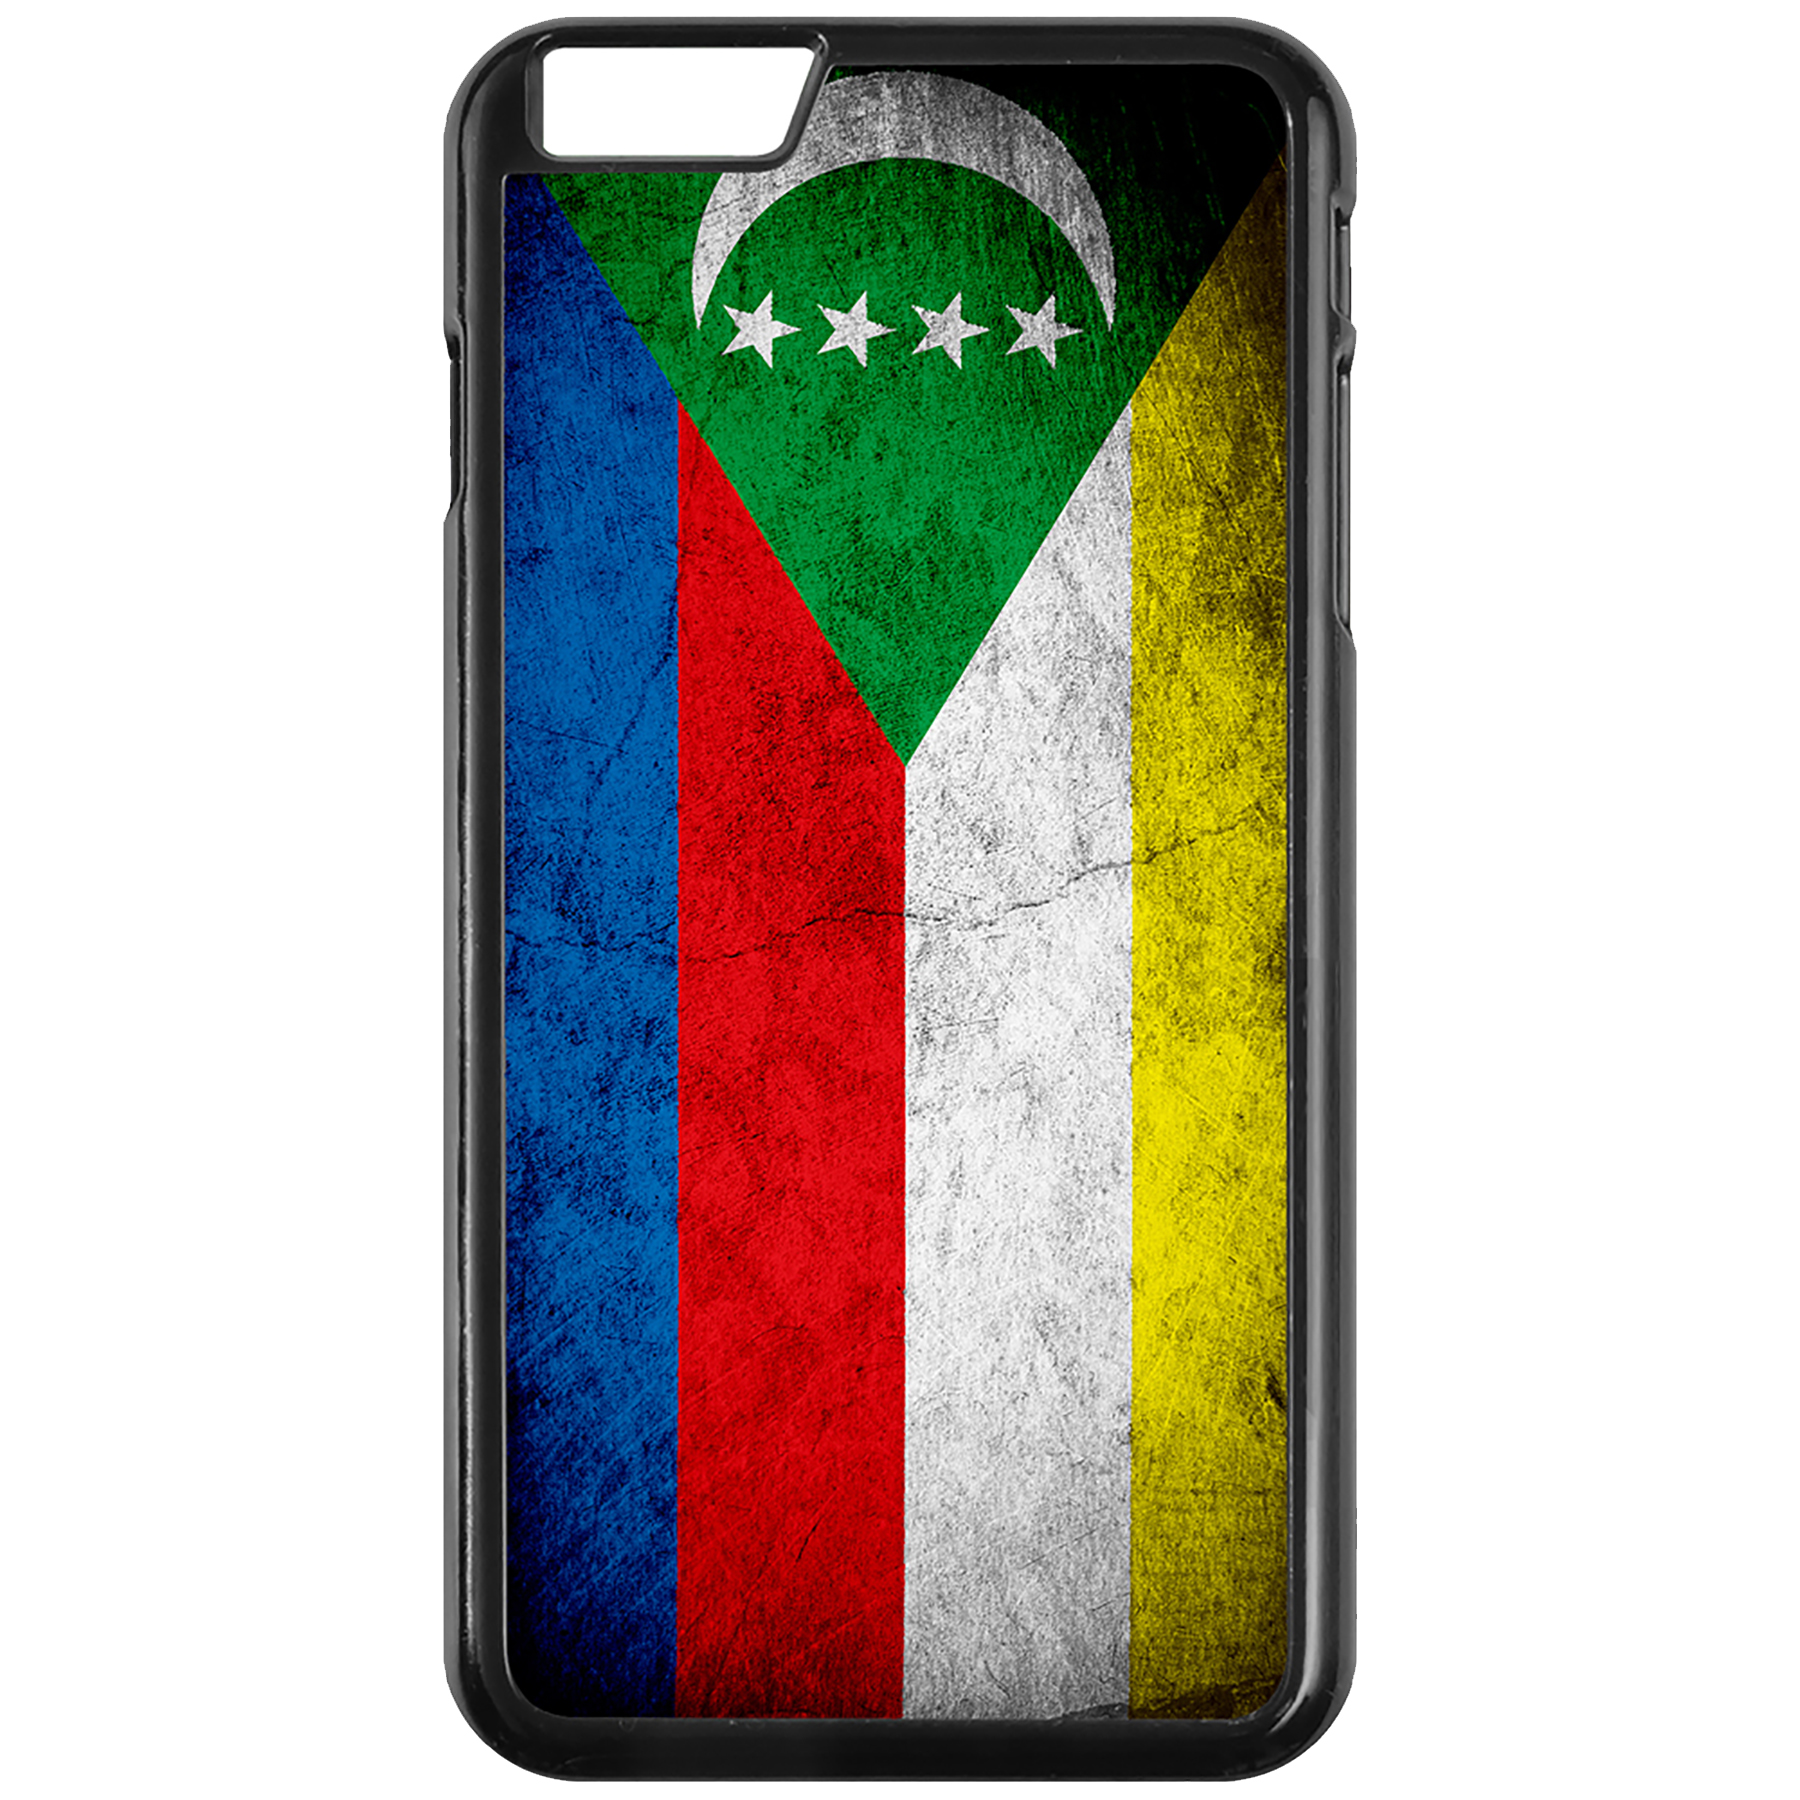 Apple-iPhone-Case-with-Flag-of-Comoros-Comorian-Many-Design-Options thumbnail 77